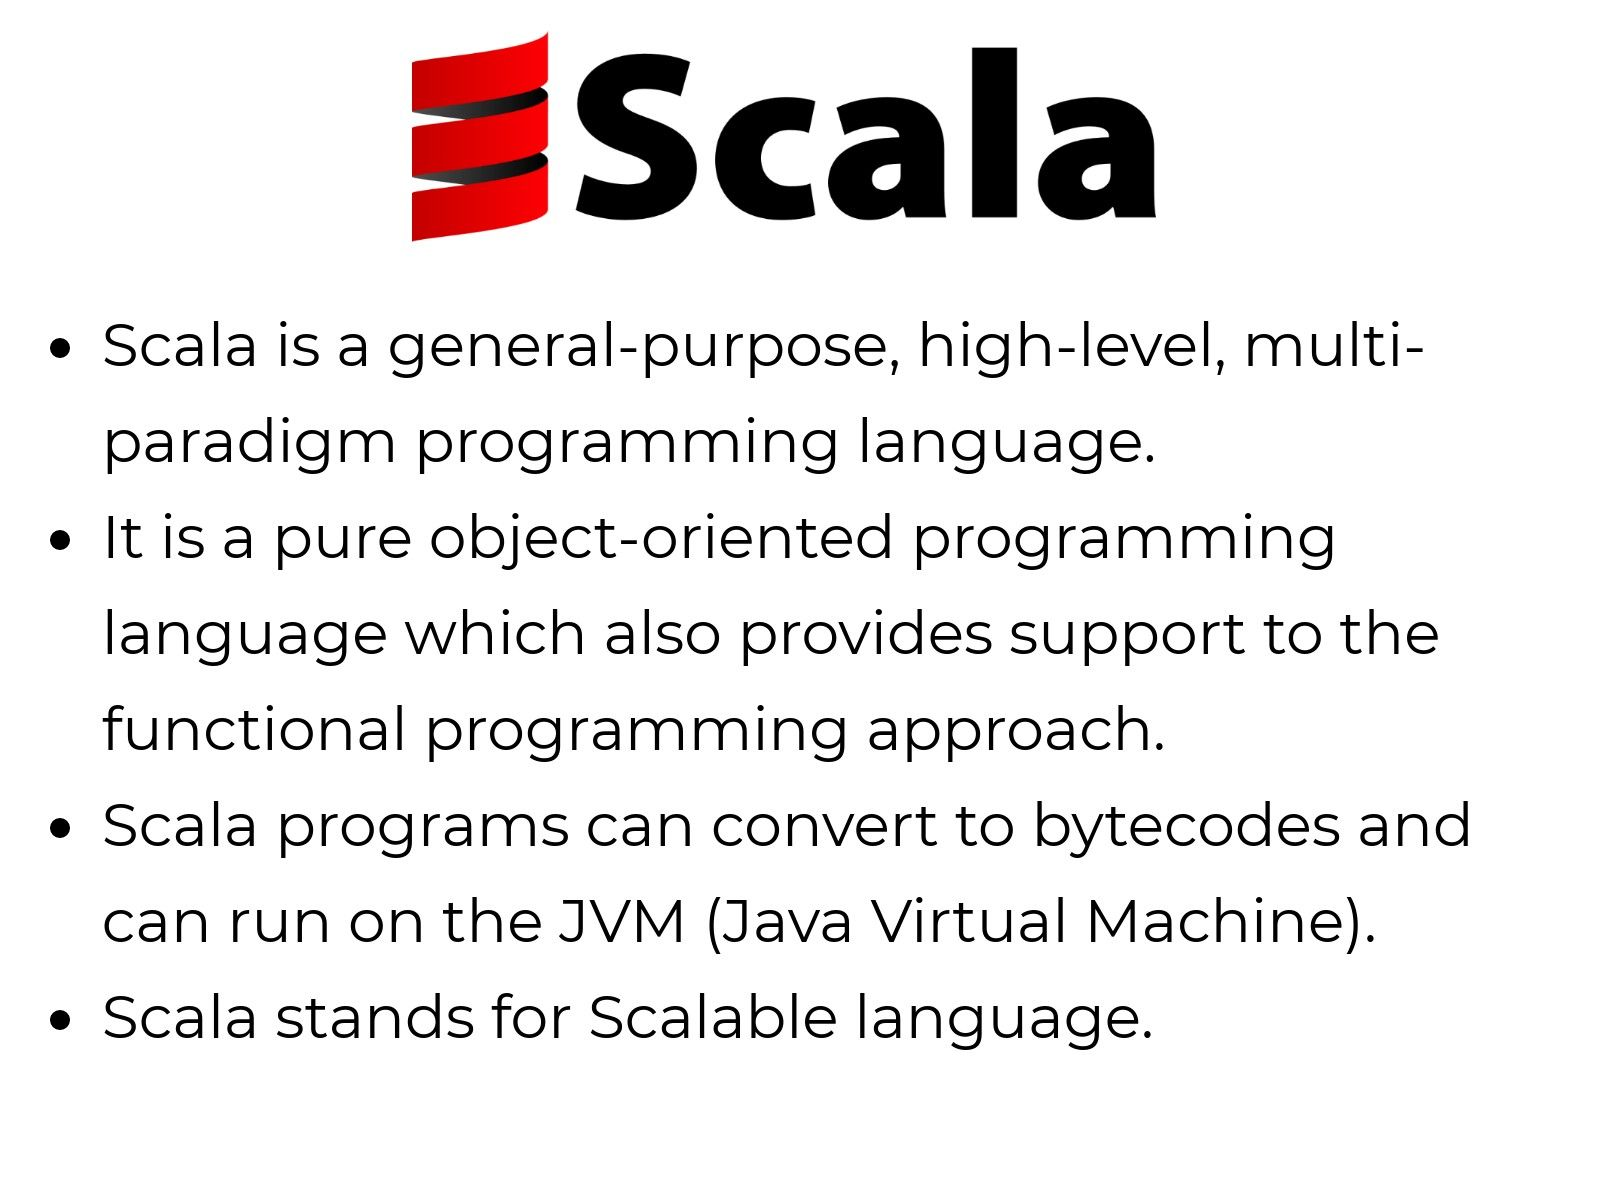 What is scala ?